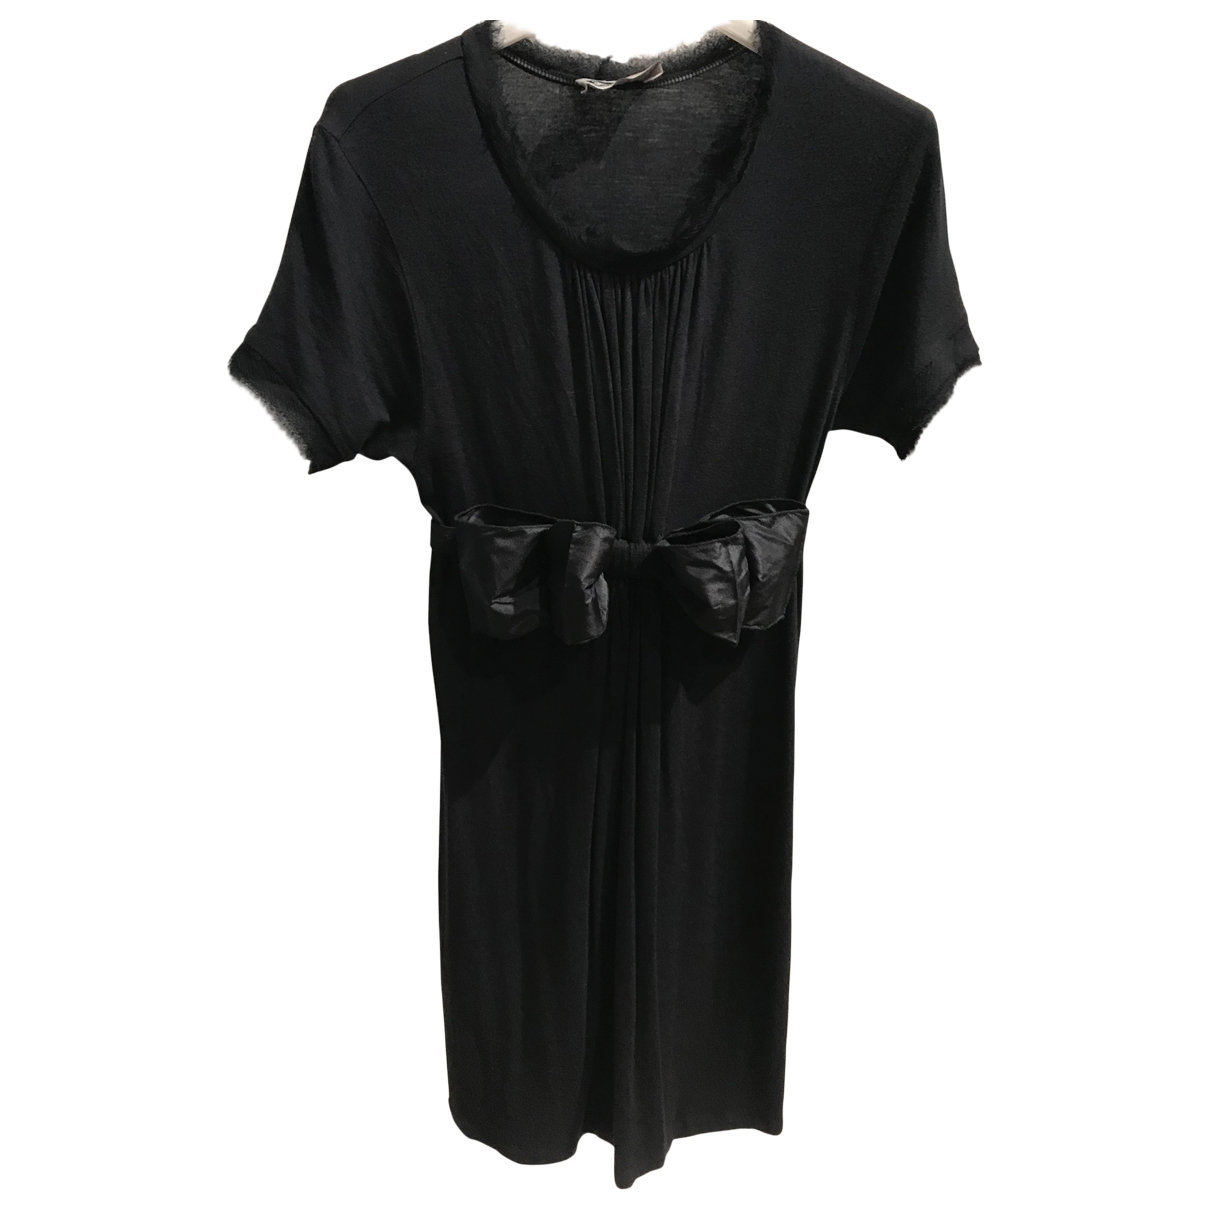 Lanvin \N Black dress for Women 36 FR